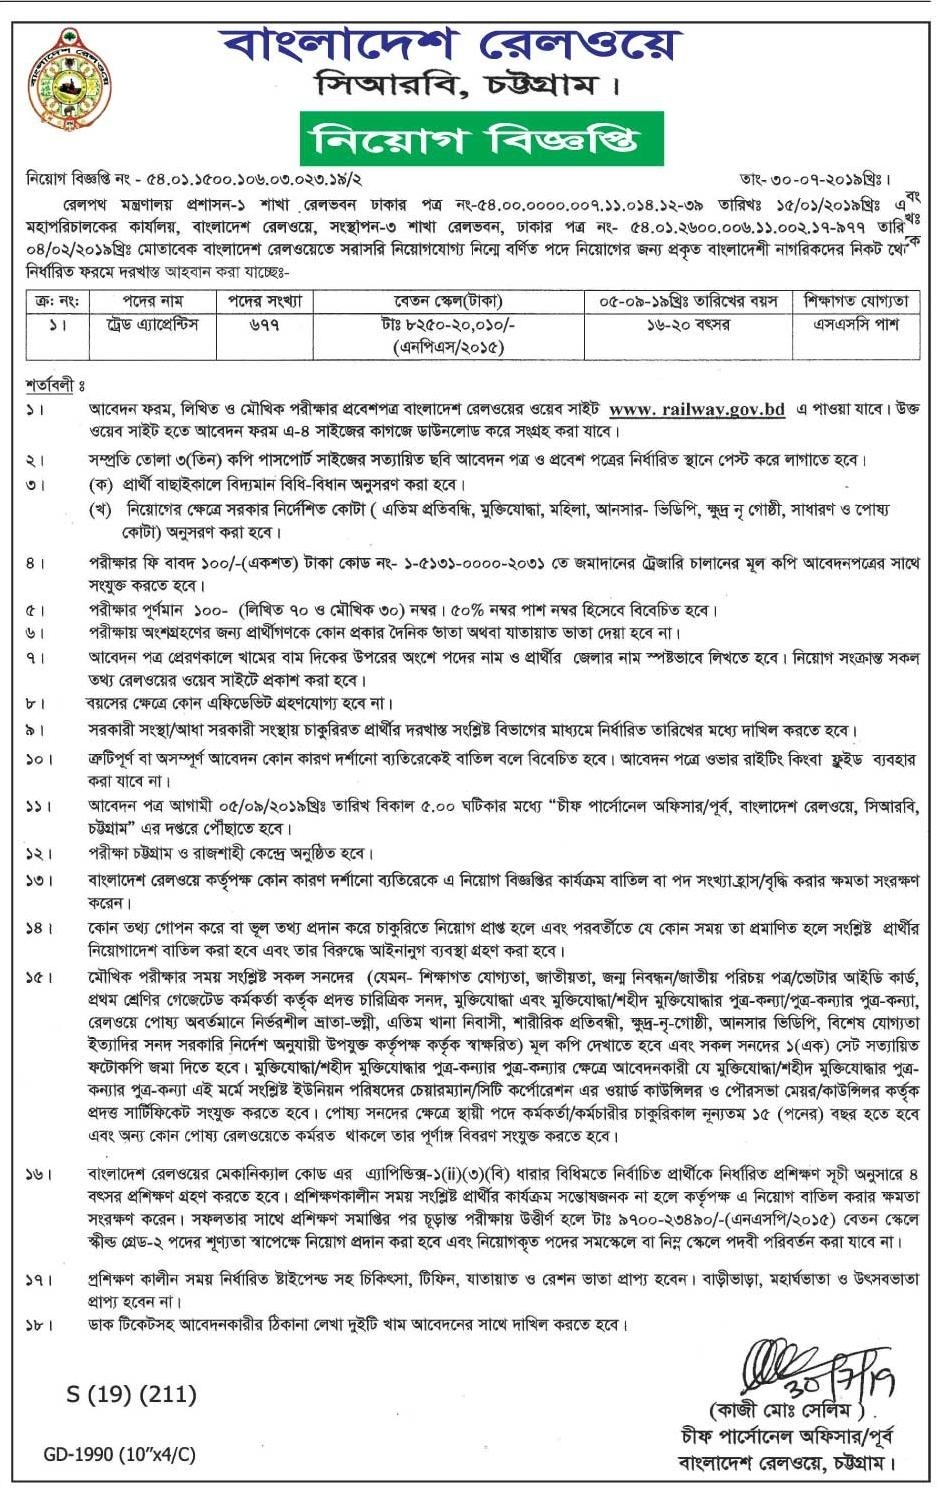 Bangladesh Railway Job Circular in 2019 railway-gov-bd